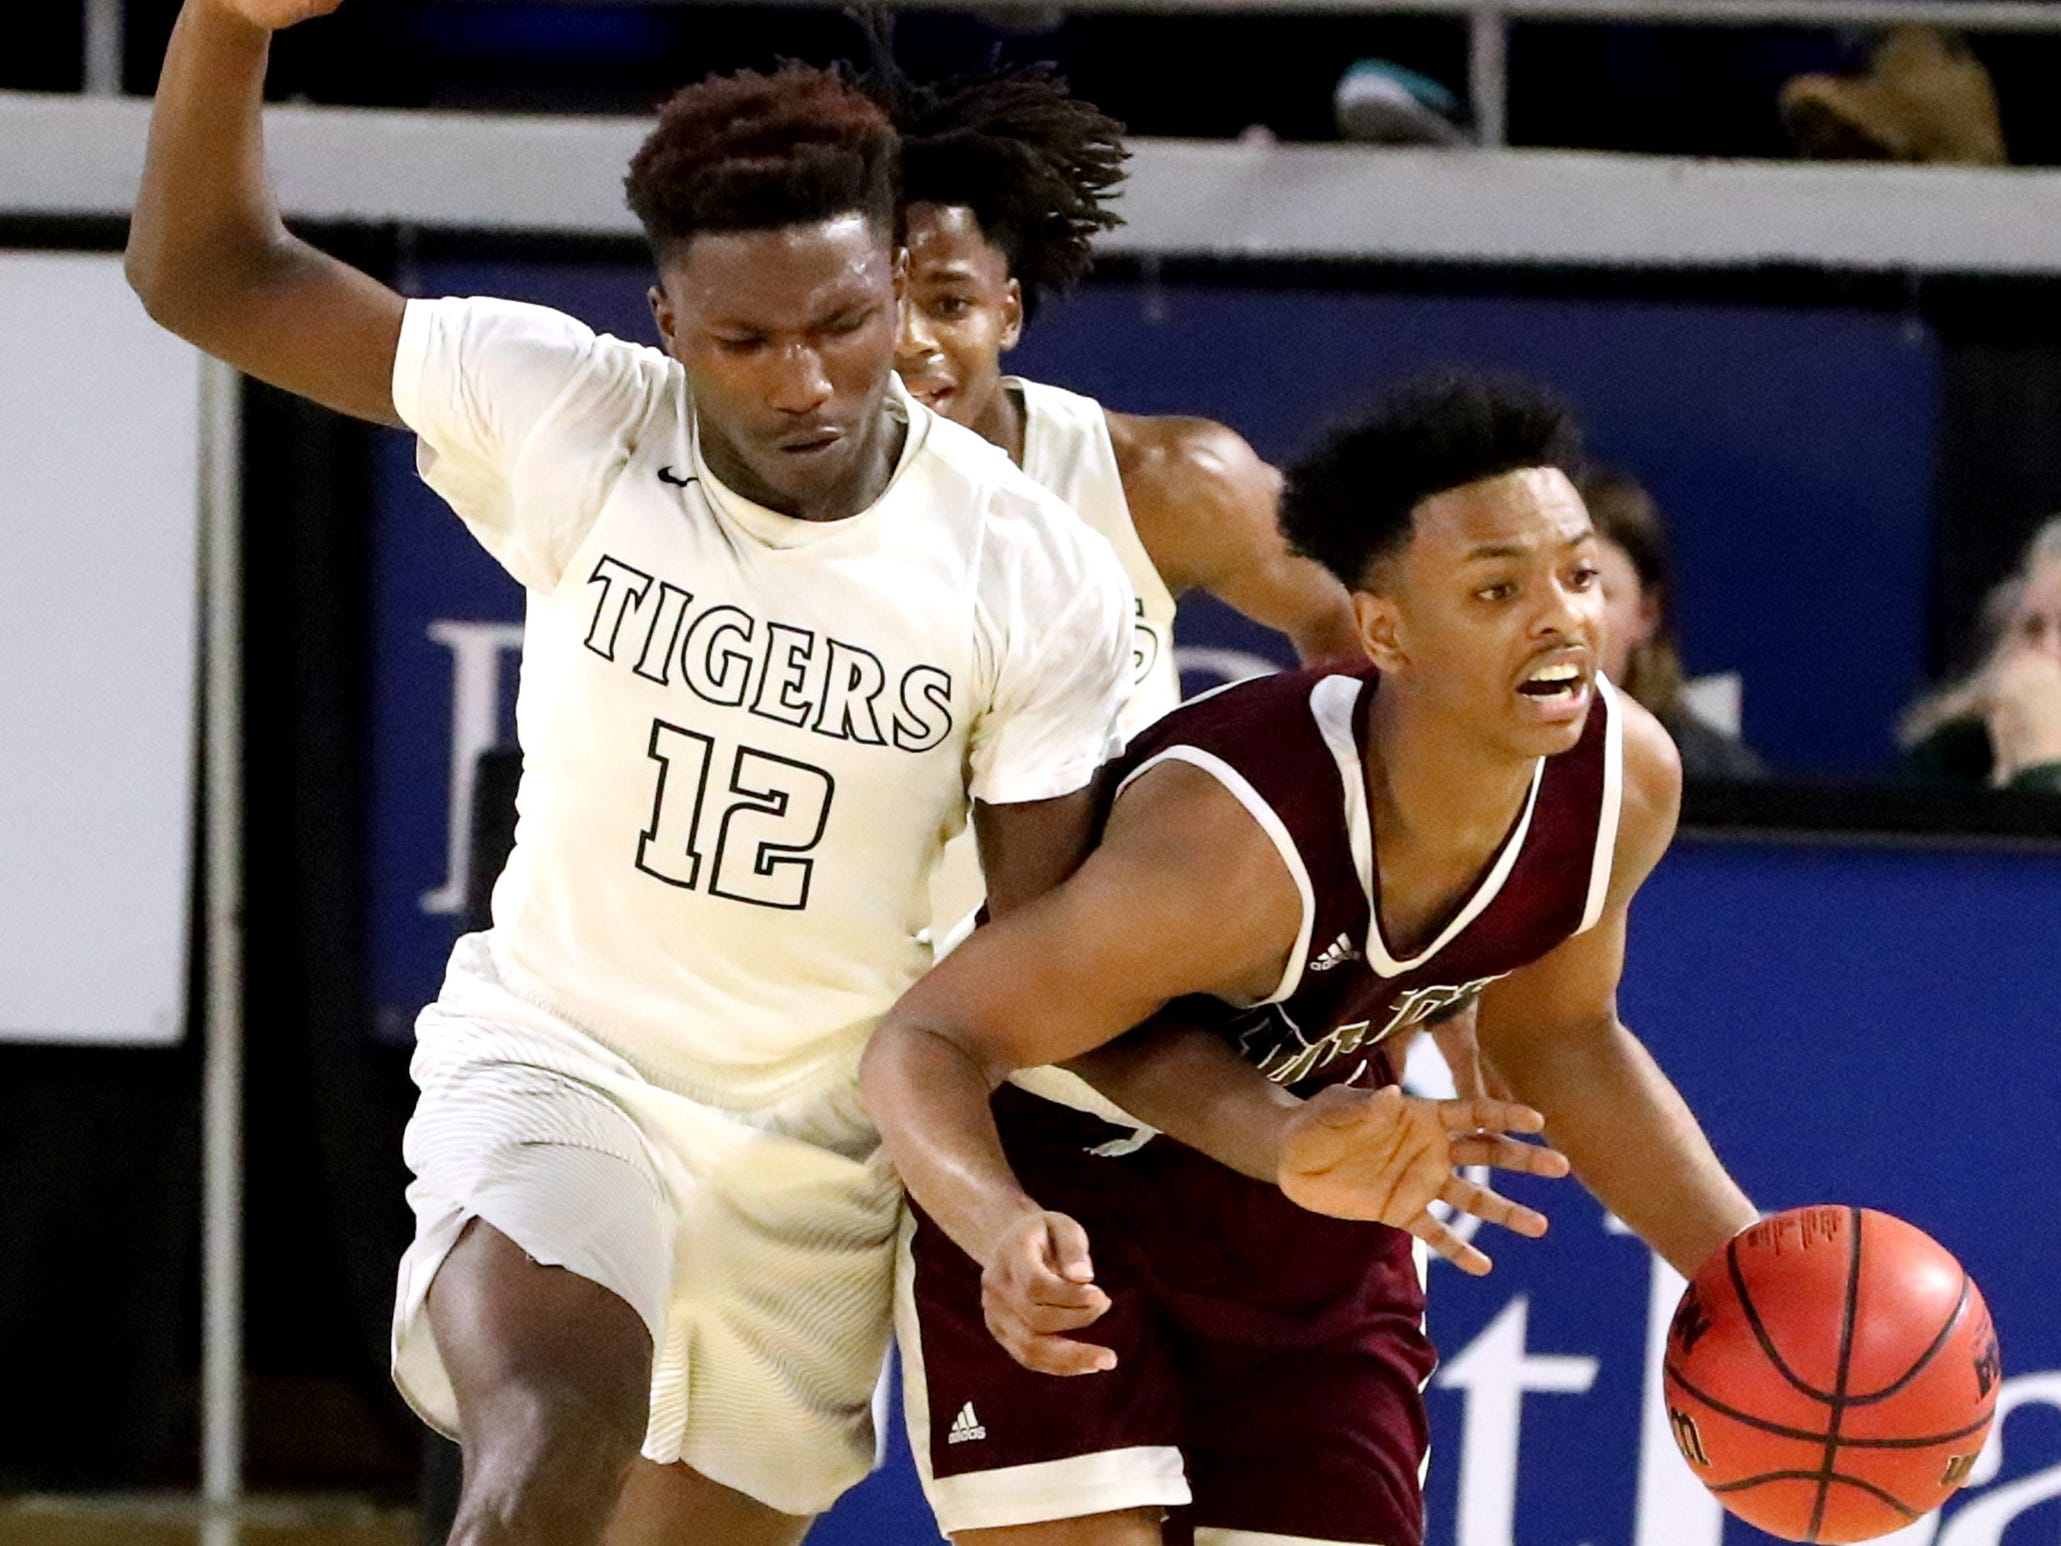 Mitchell's Phabian Dale (12) fouls Fulton's Ron Davis III (2) as he brings the ball up court during the quarterfinal round of the TSSAA Class AA Boys State Tournament, on Wednesday, March 13, 2019, at Murphy Center in Murfreesboro, Tenn.